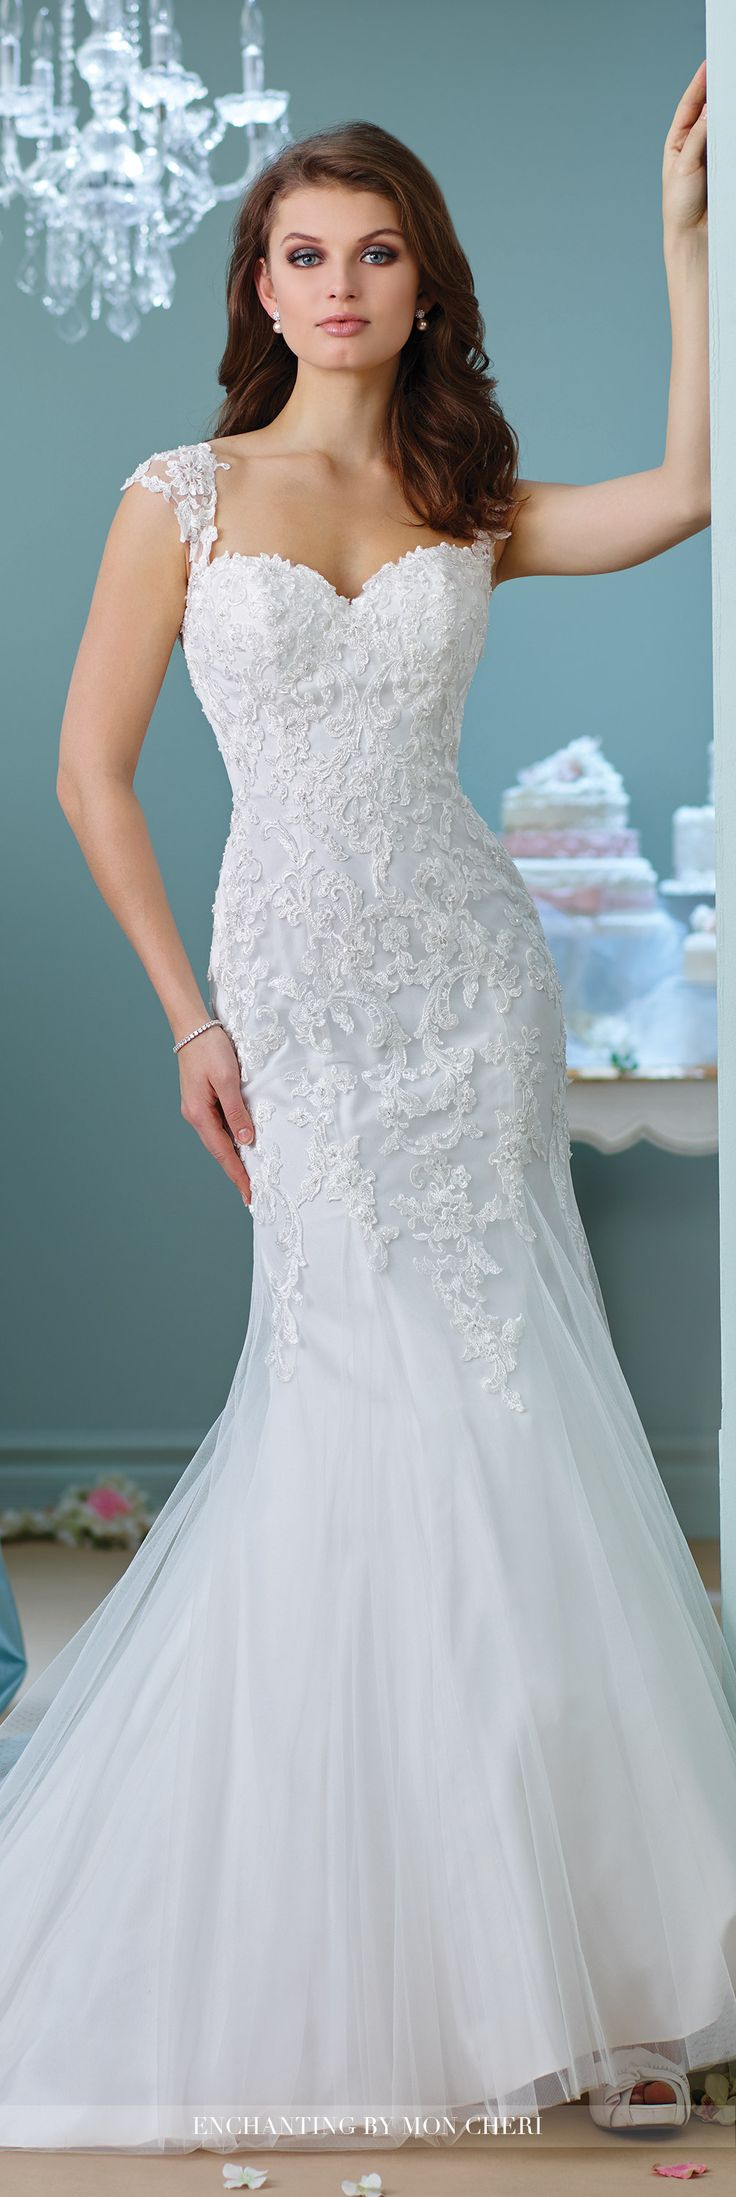 Trumpet Style Wedding Dresses Lace : Trumpet wedding dresses gown g